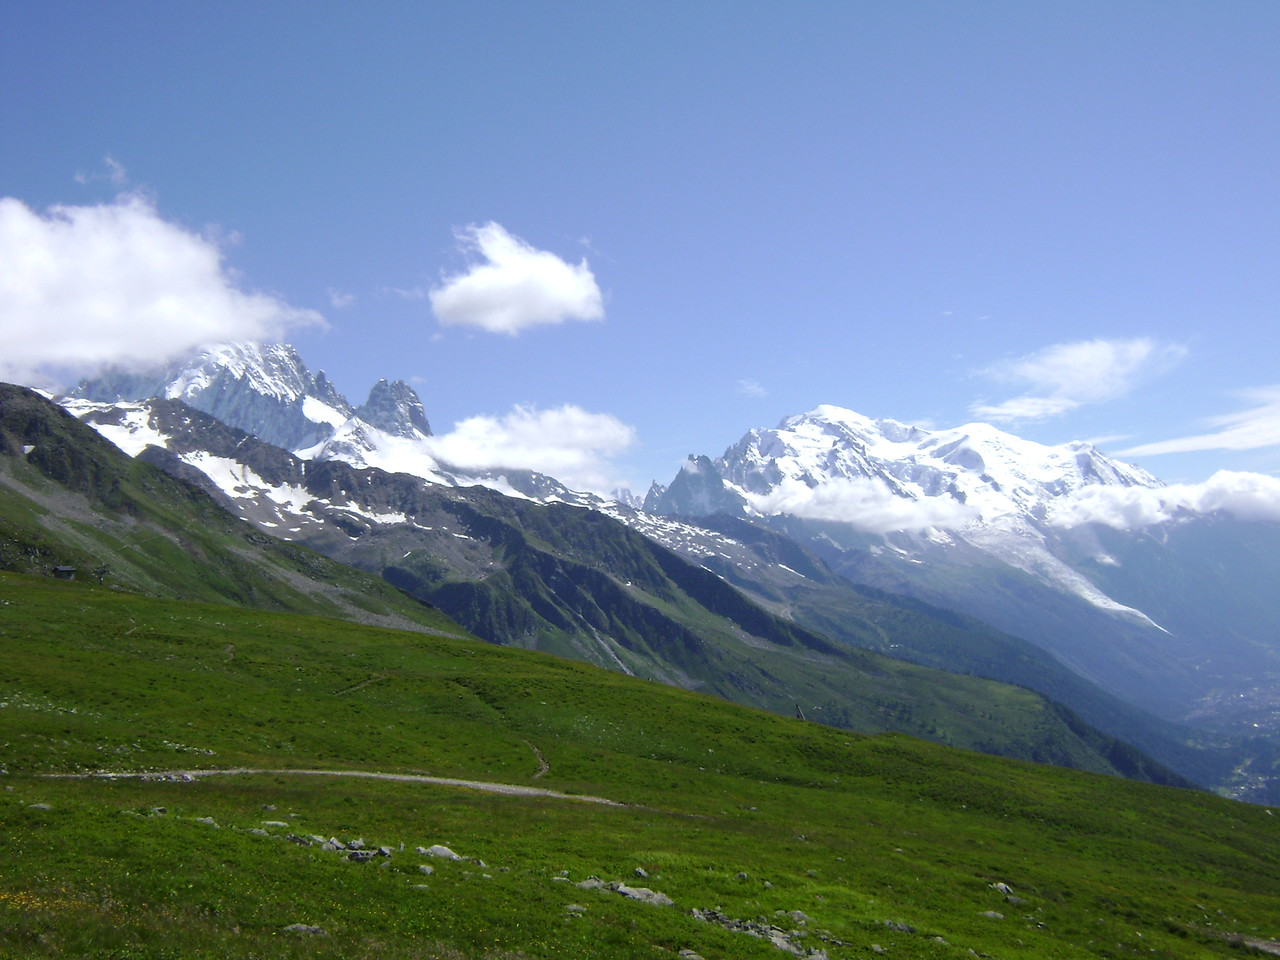 2 leaving the green fields of France and Mont Blanc for the alps of Switzerland